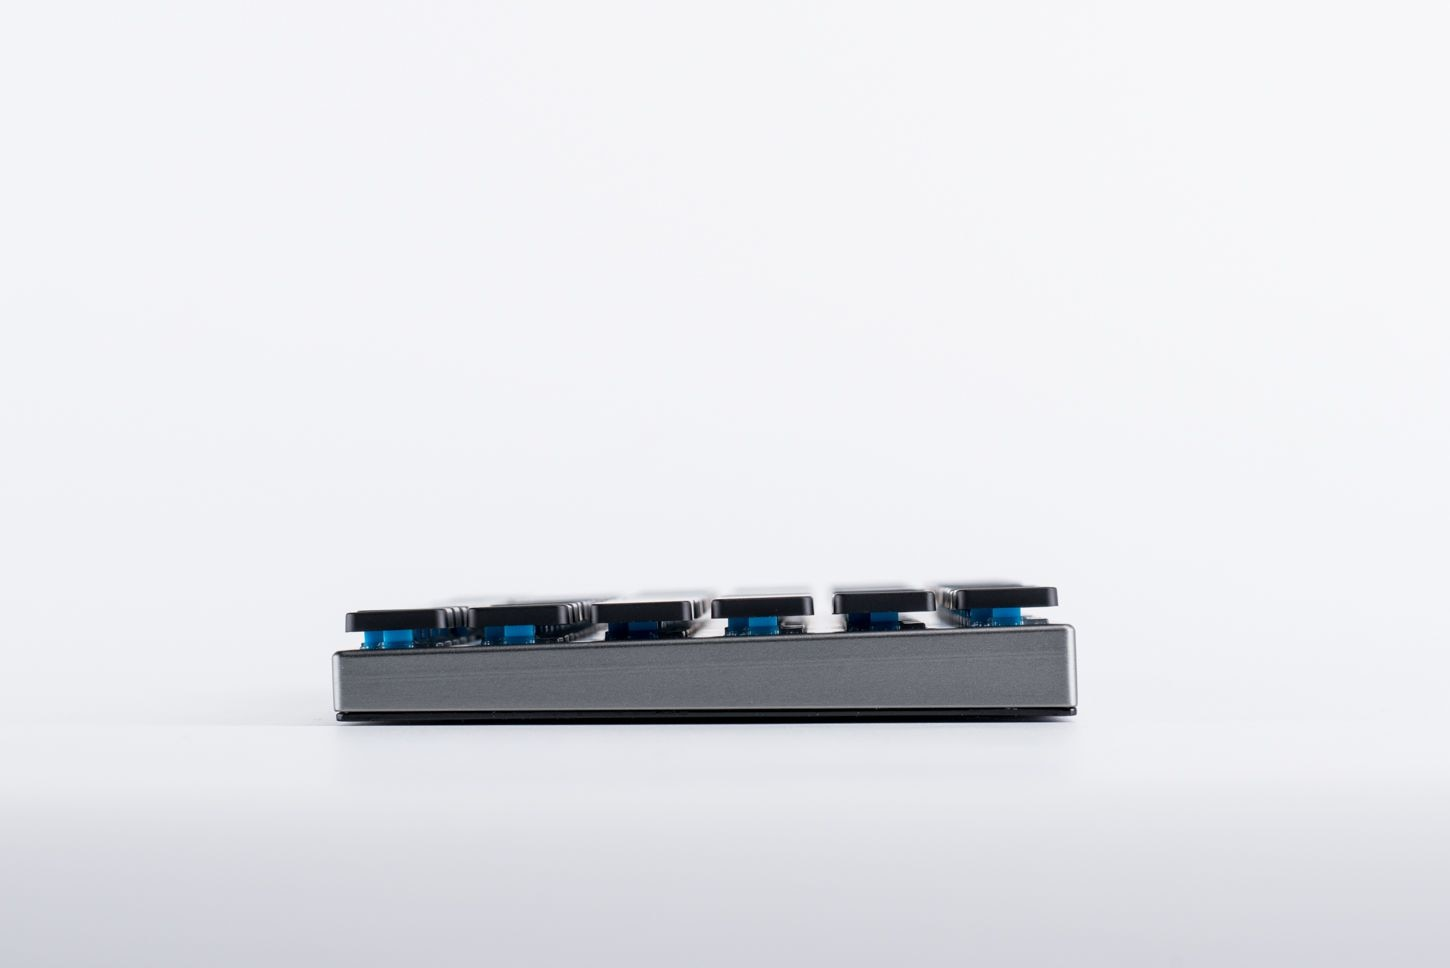 The switches are visible under the key caps on the Vinpok Taptek keyboard